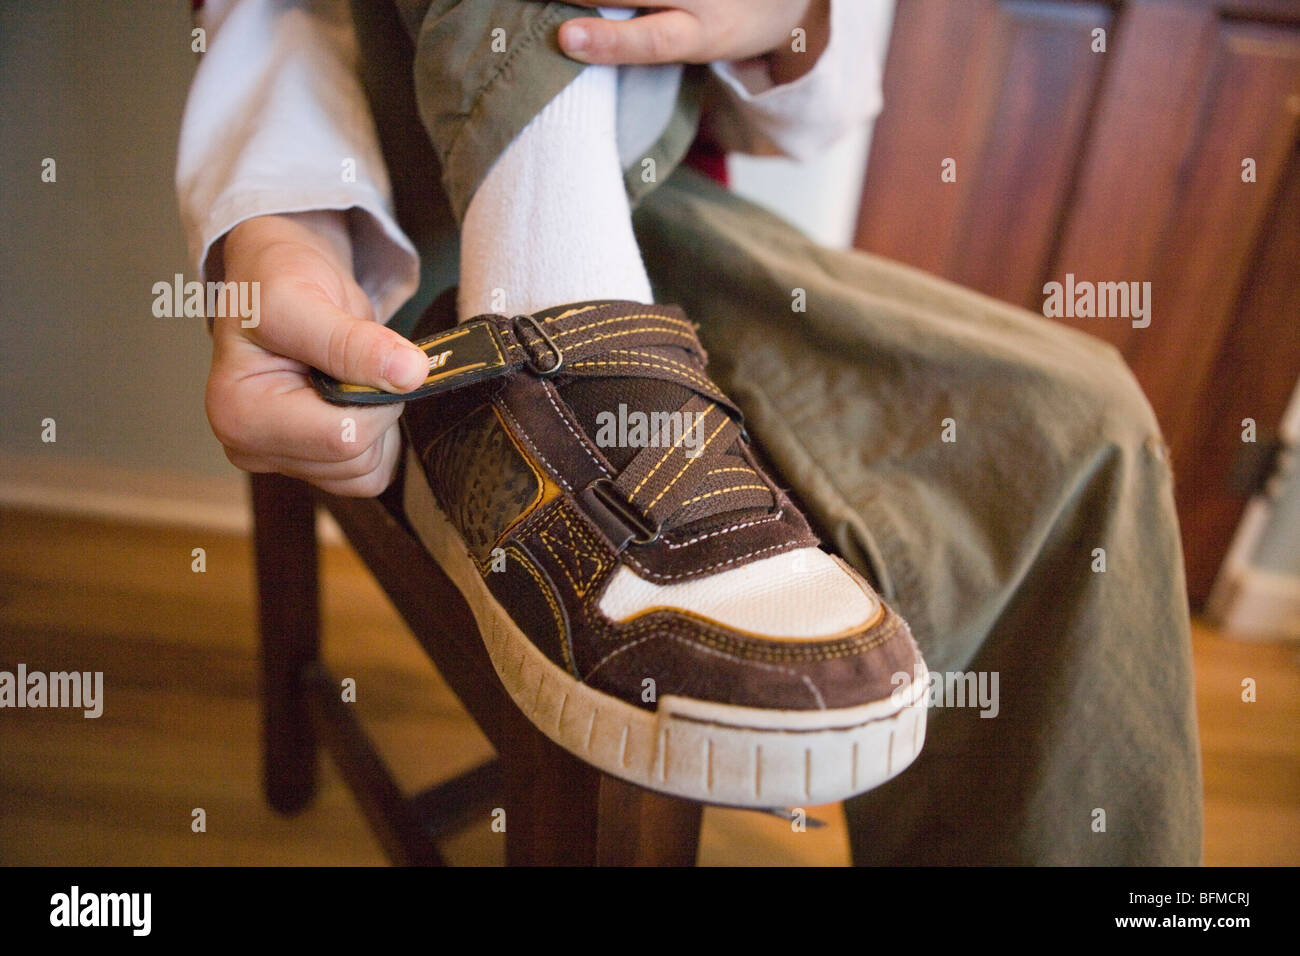 Close up of a child putting on his sneakers using a velcro strap, getting dressed - Stock Image